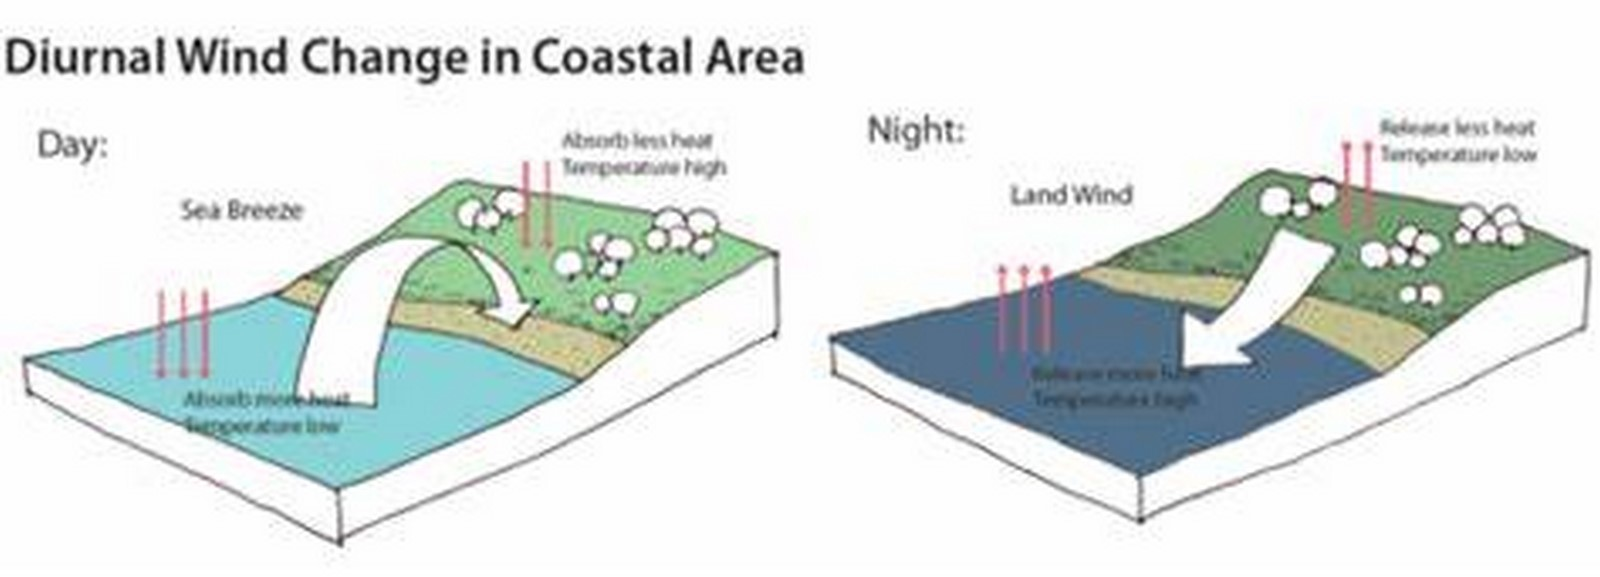 10 things to remember while designing in Coastal areas - Sheet10